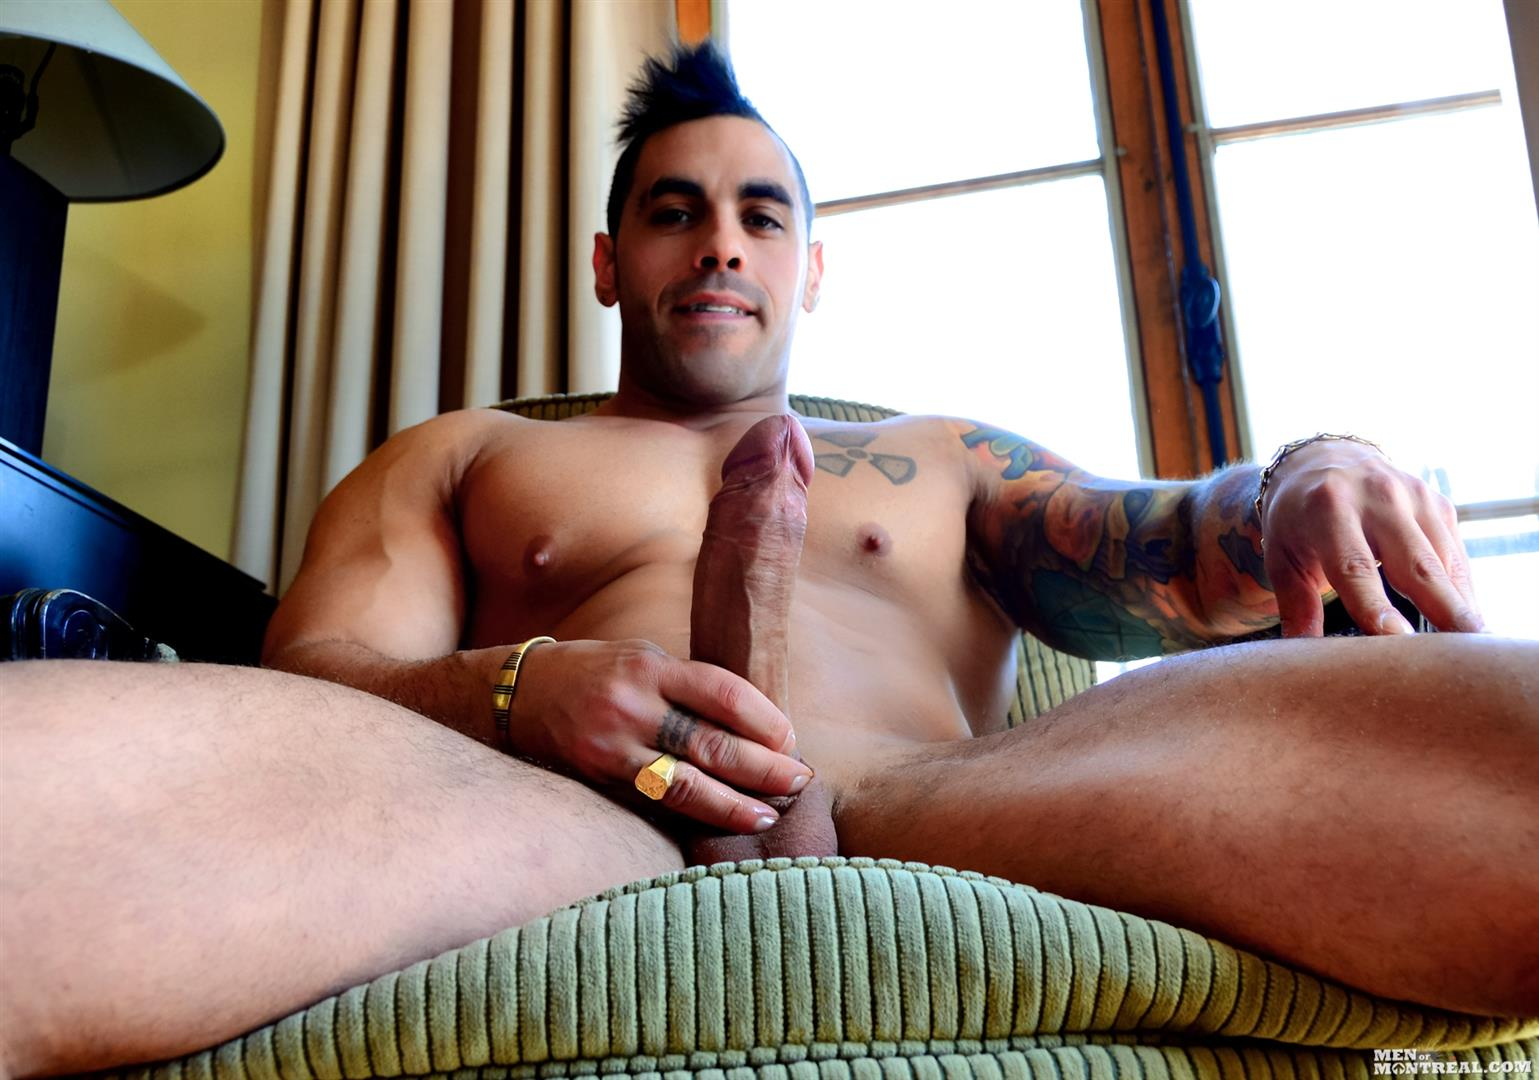 Men-of-Montreal-Emilio-Calabria-Italian-Hunk-With-A-Big-Thick-Uncut-Cock-Amateur-Gay-Porn-08 Beefy Italian Body Guard Stroking His Big Thick Uncut Cock